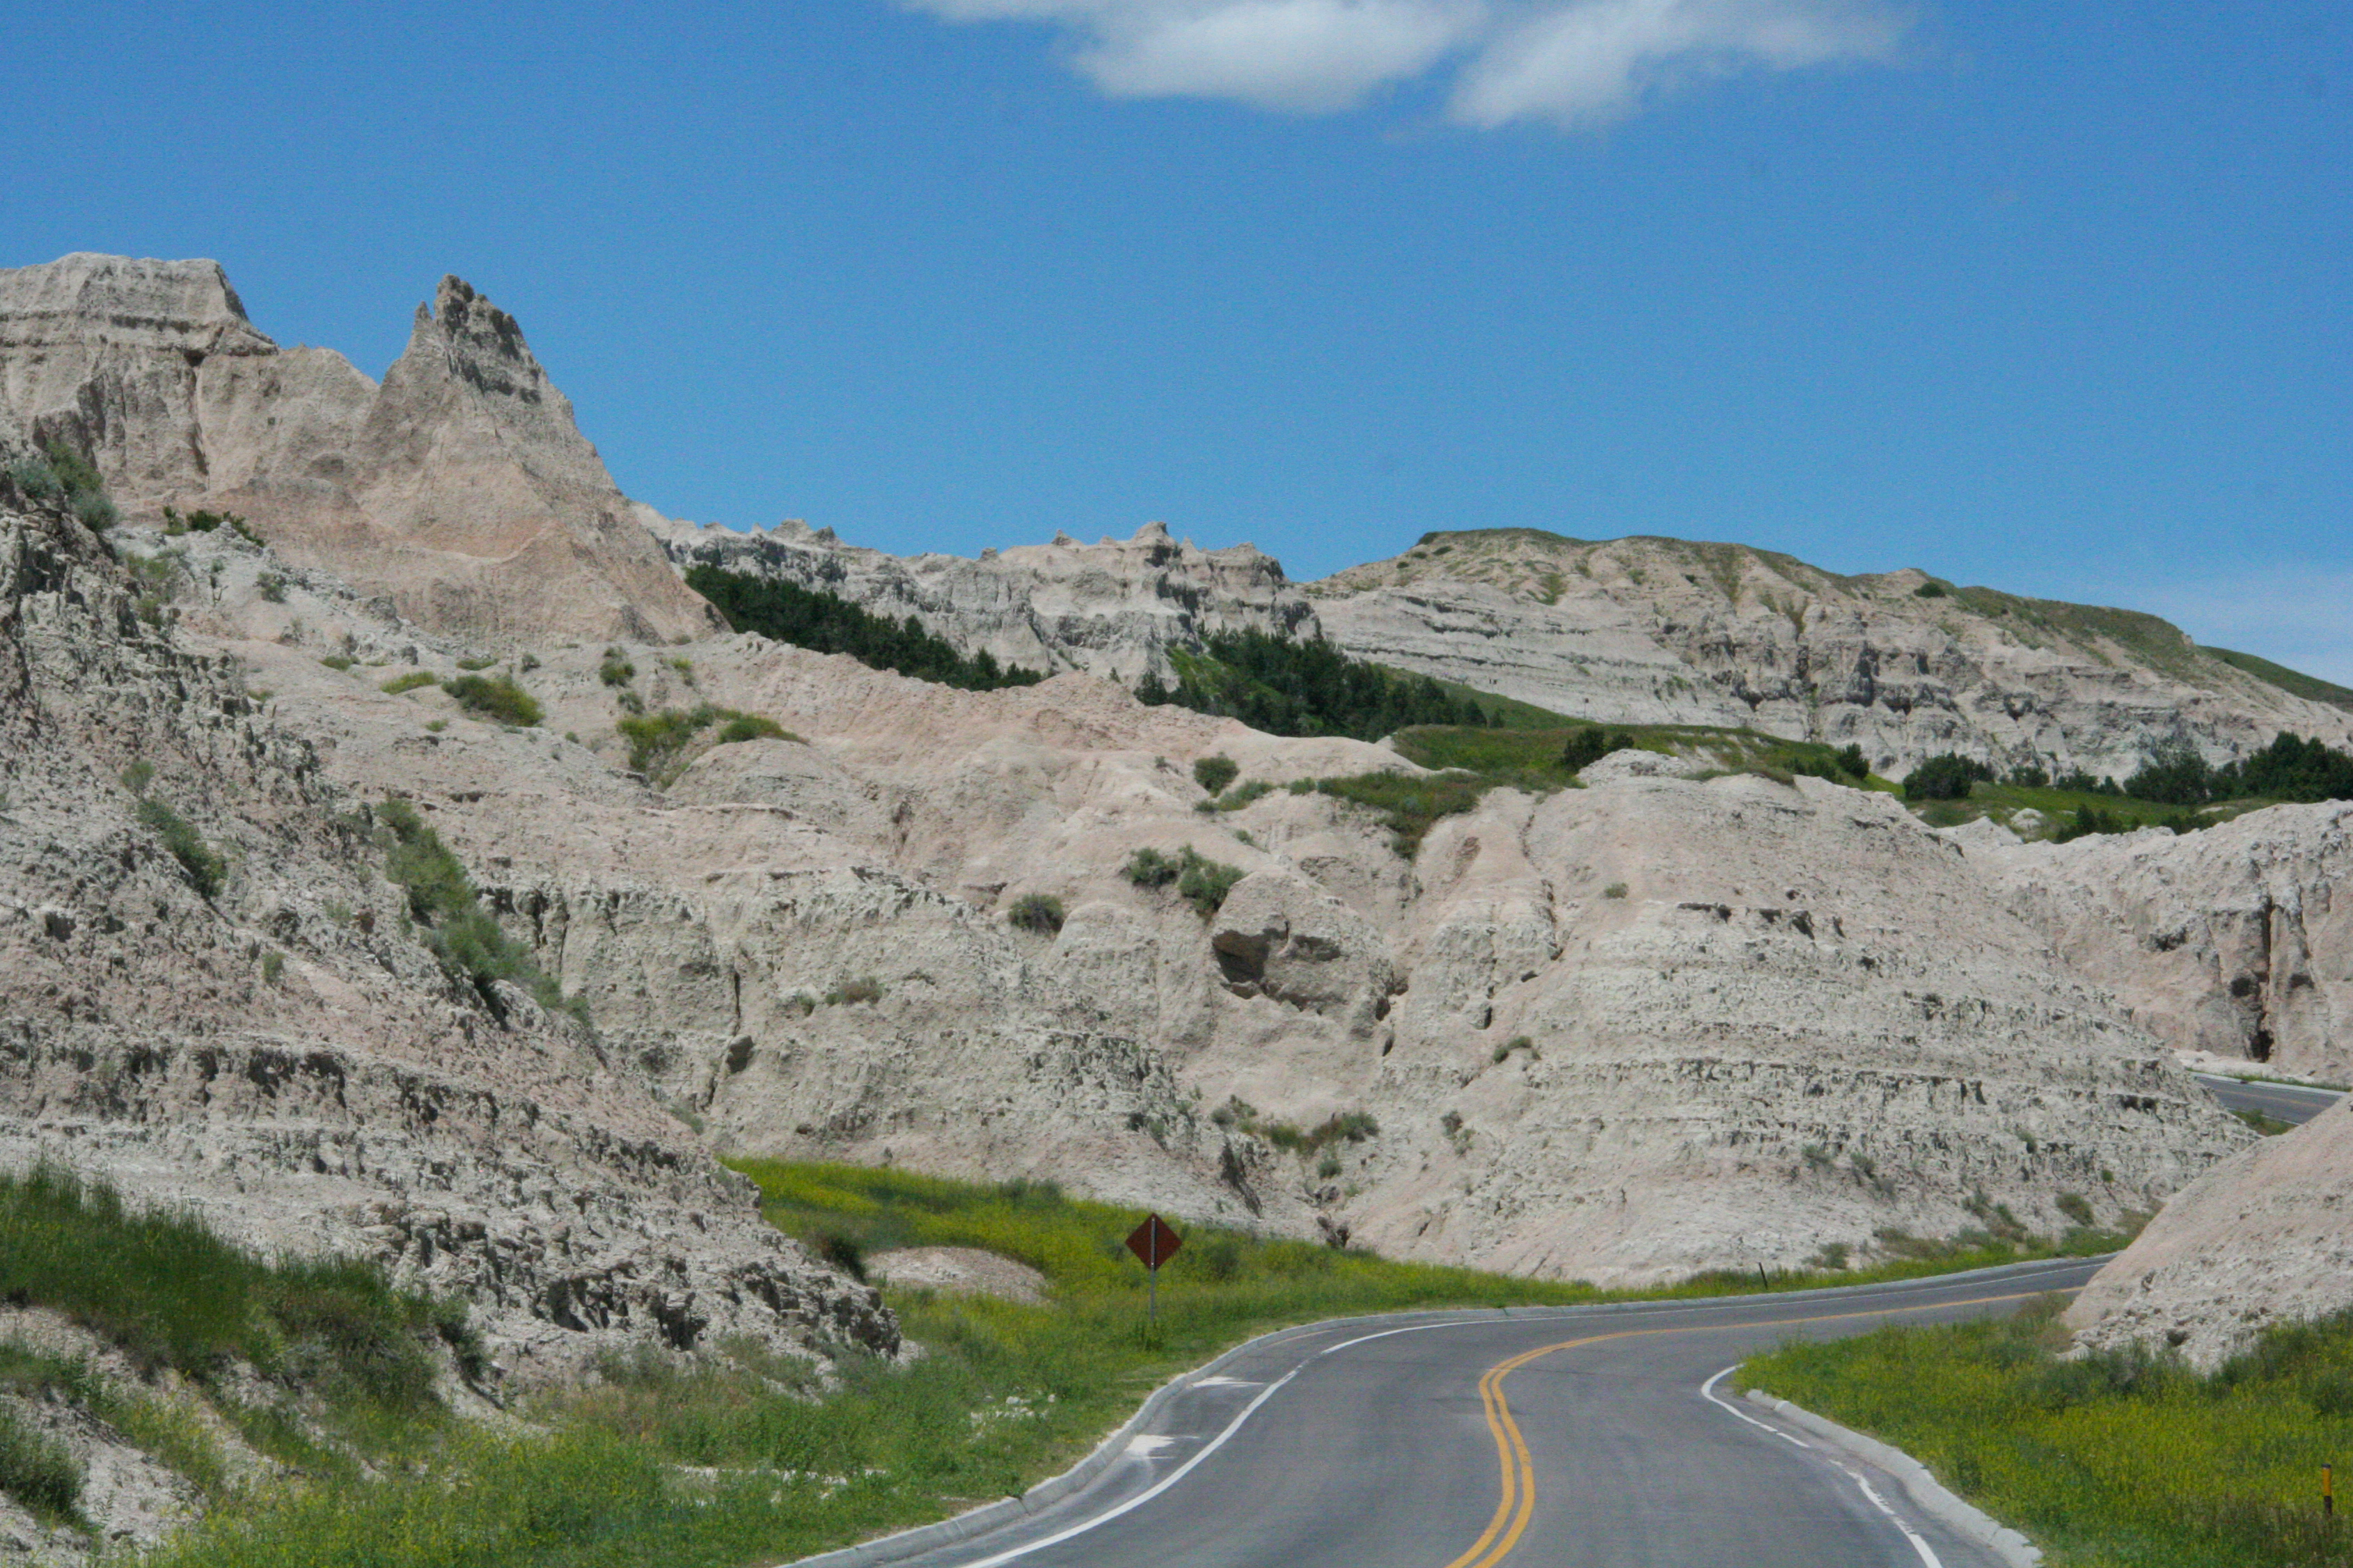 Badlands National Park Rv Camping Review Rv Places To Go